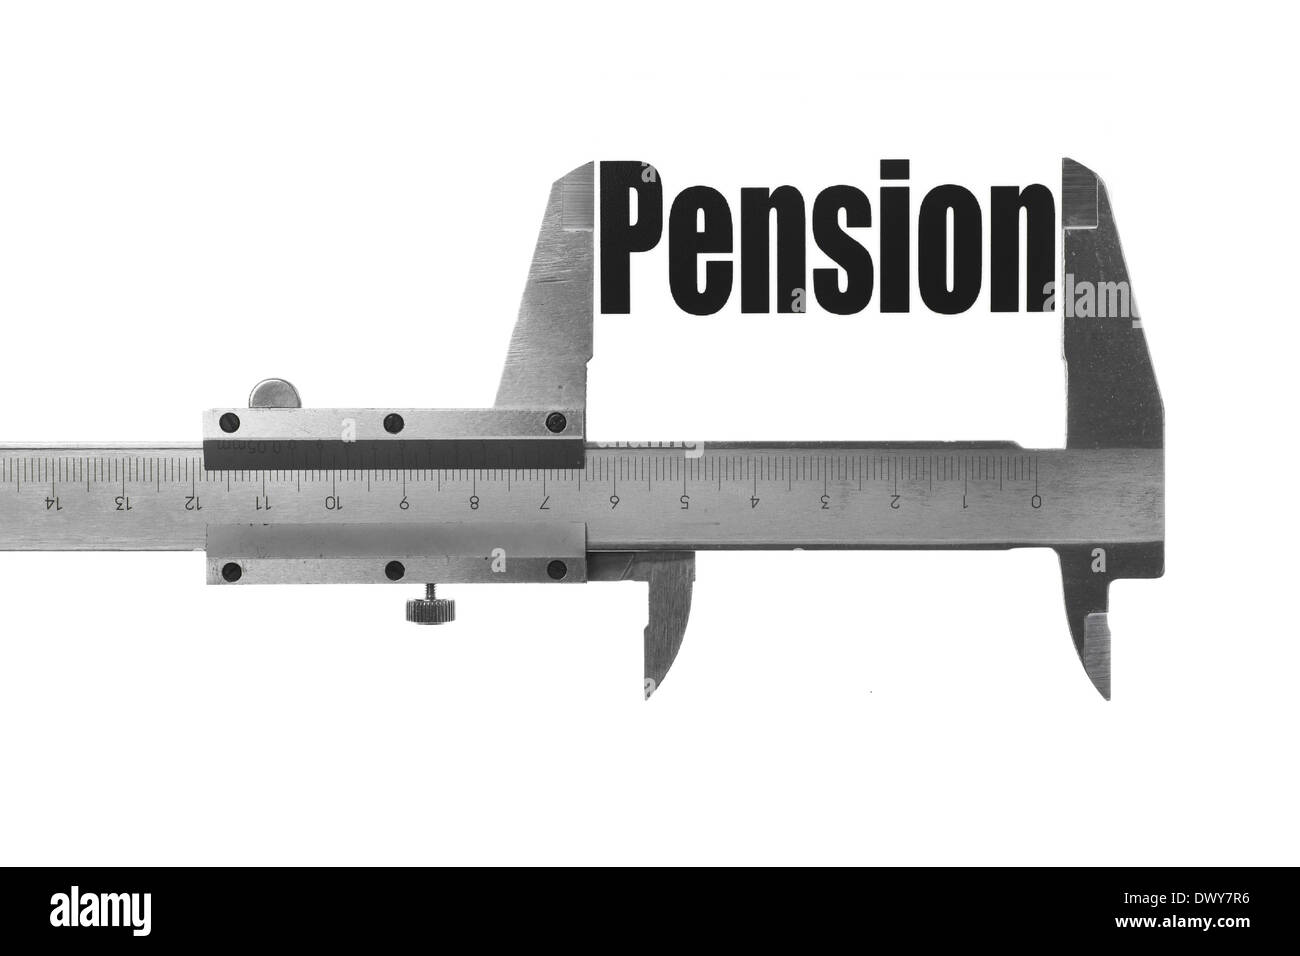 Close up shot of a caliper measuring the word 'Pension' - Stock Image